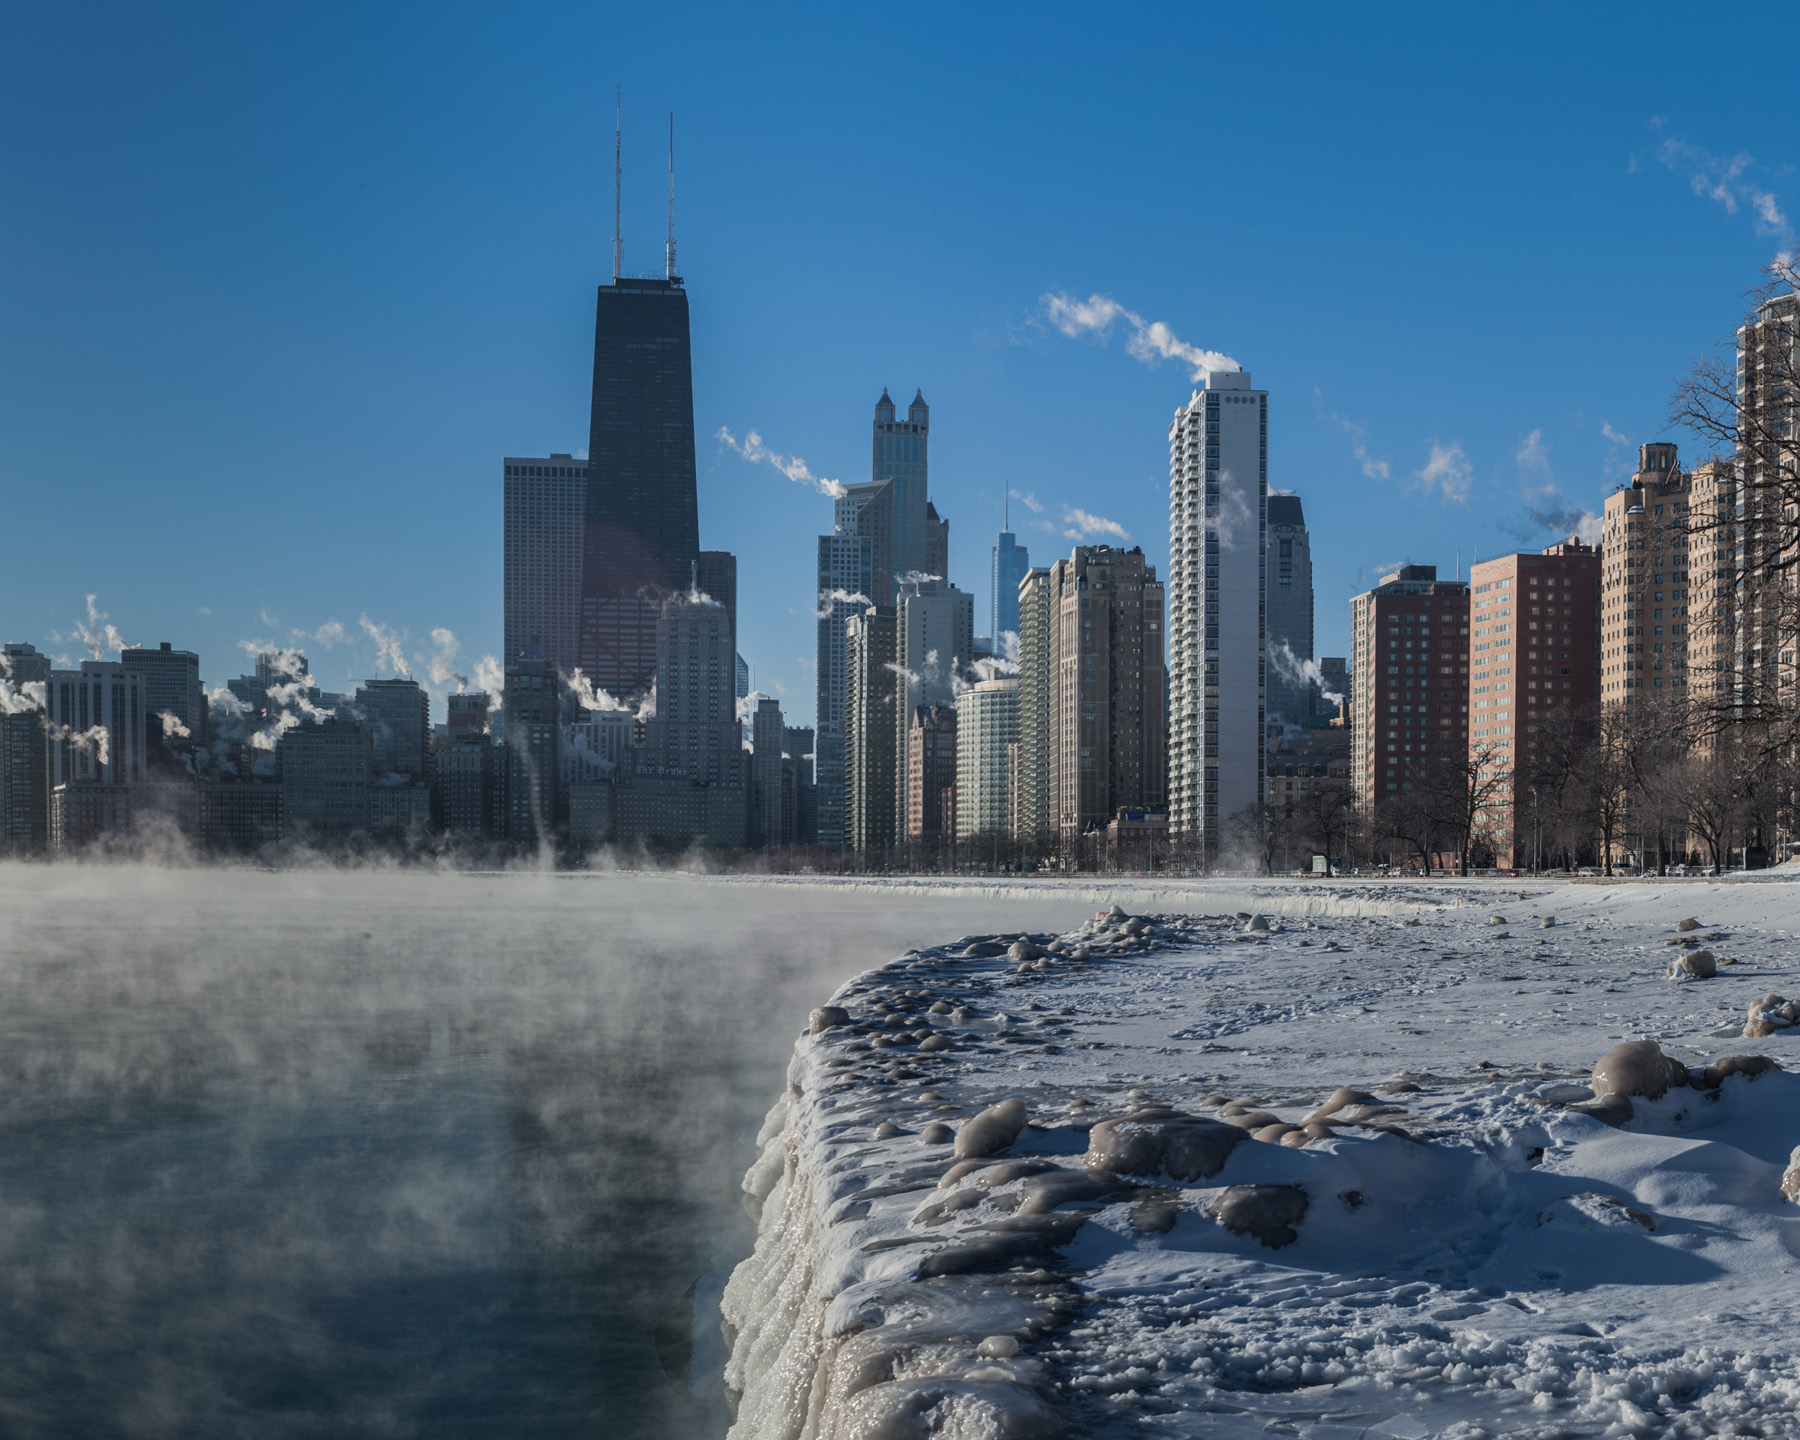 on one of those crazy cold Chicago winter mornings, I took this shot of the skyline with all the steam billowing off the towers and the lake. this shot was taken from the North Ave beach area